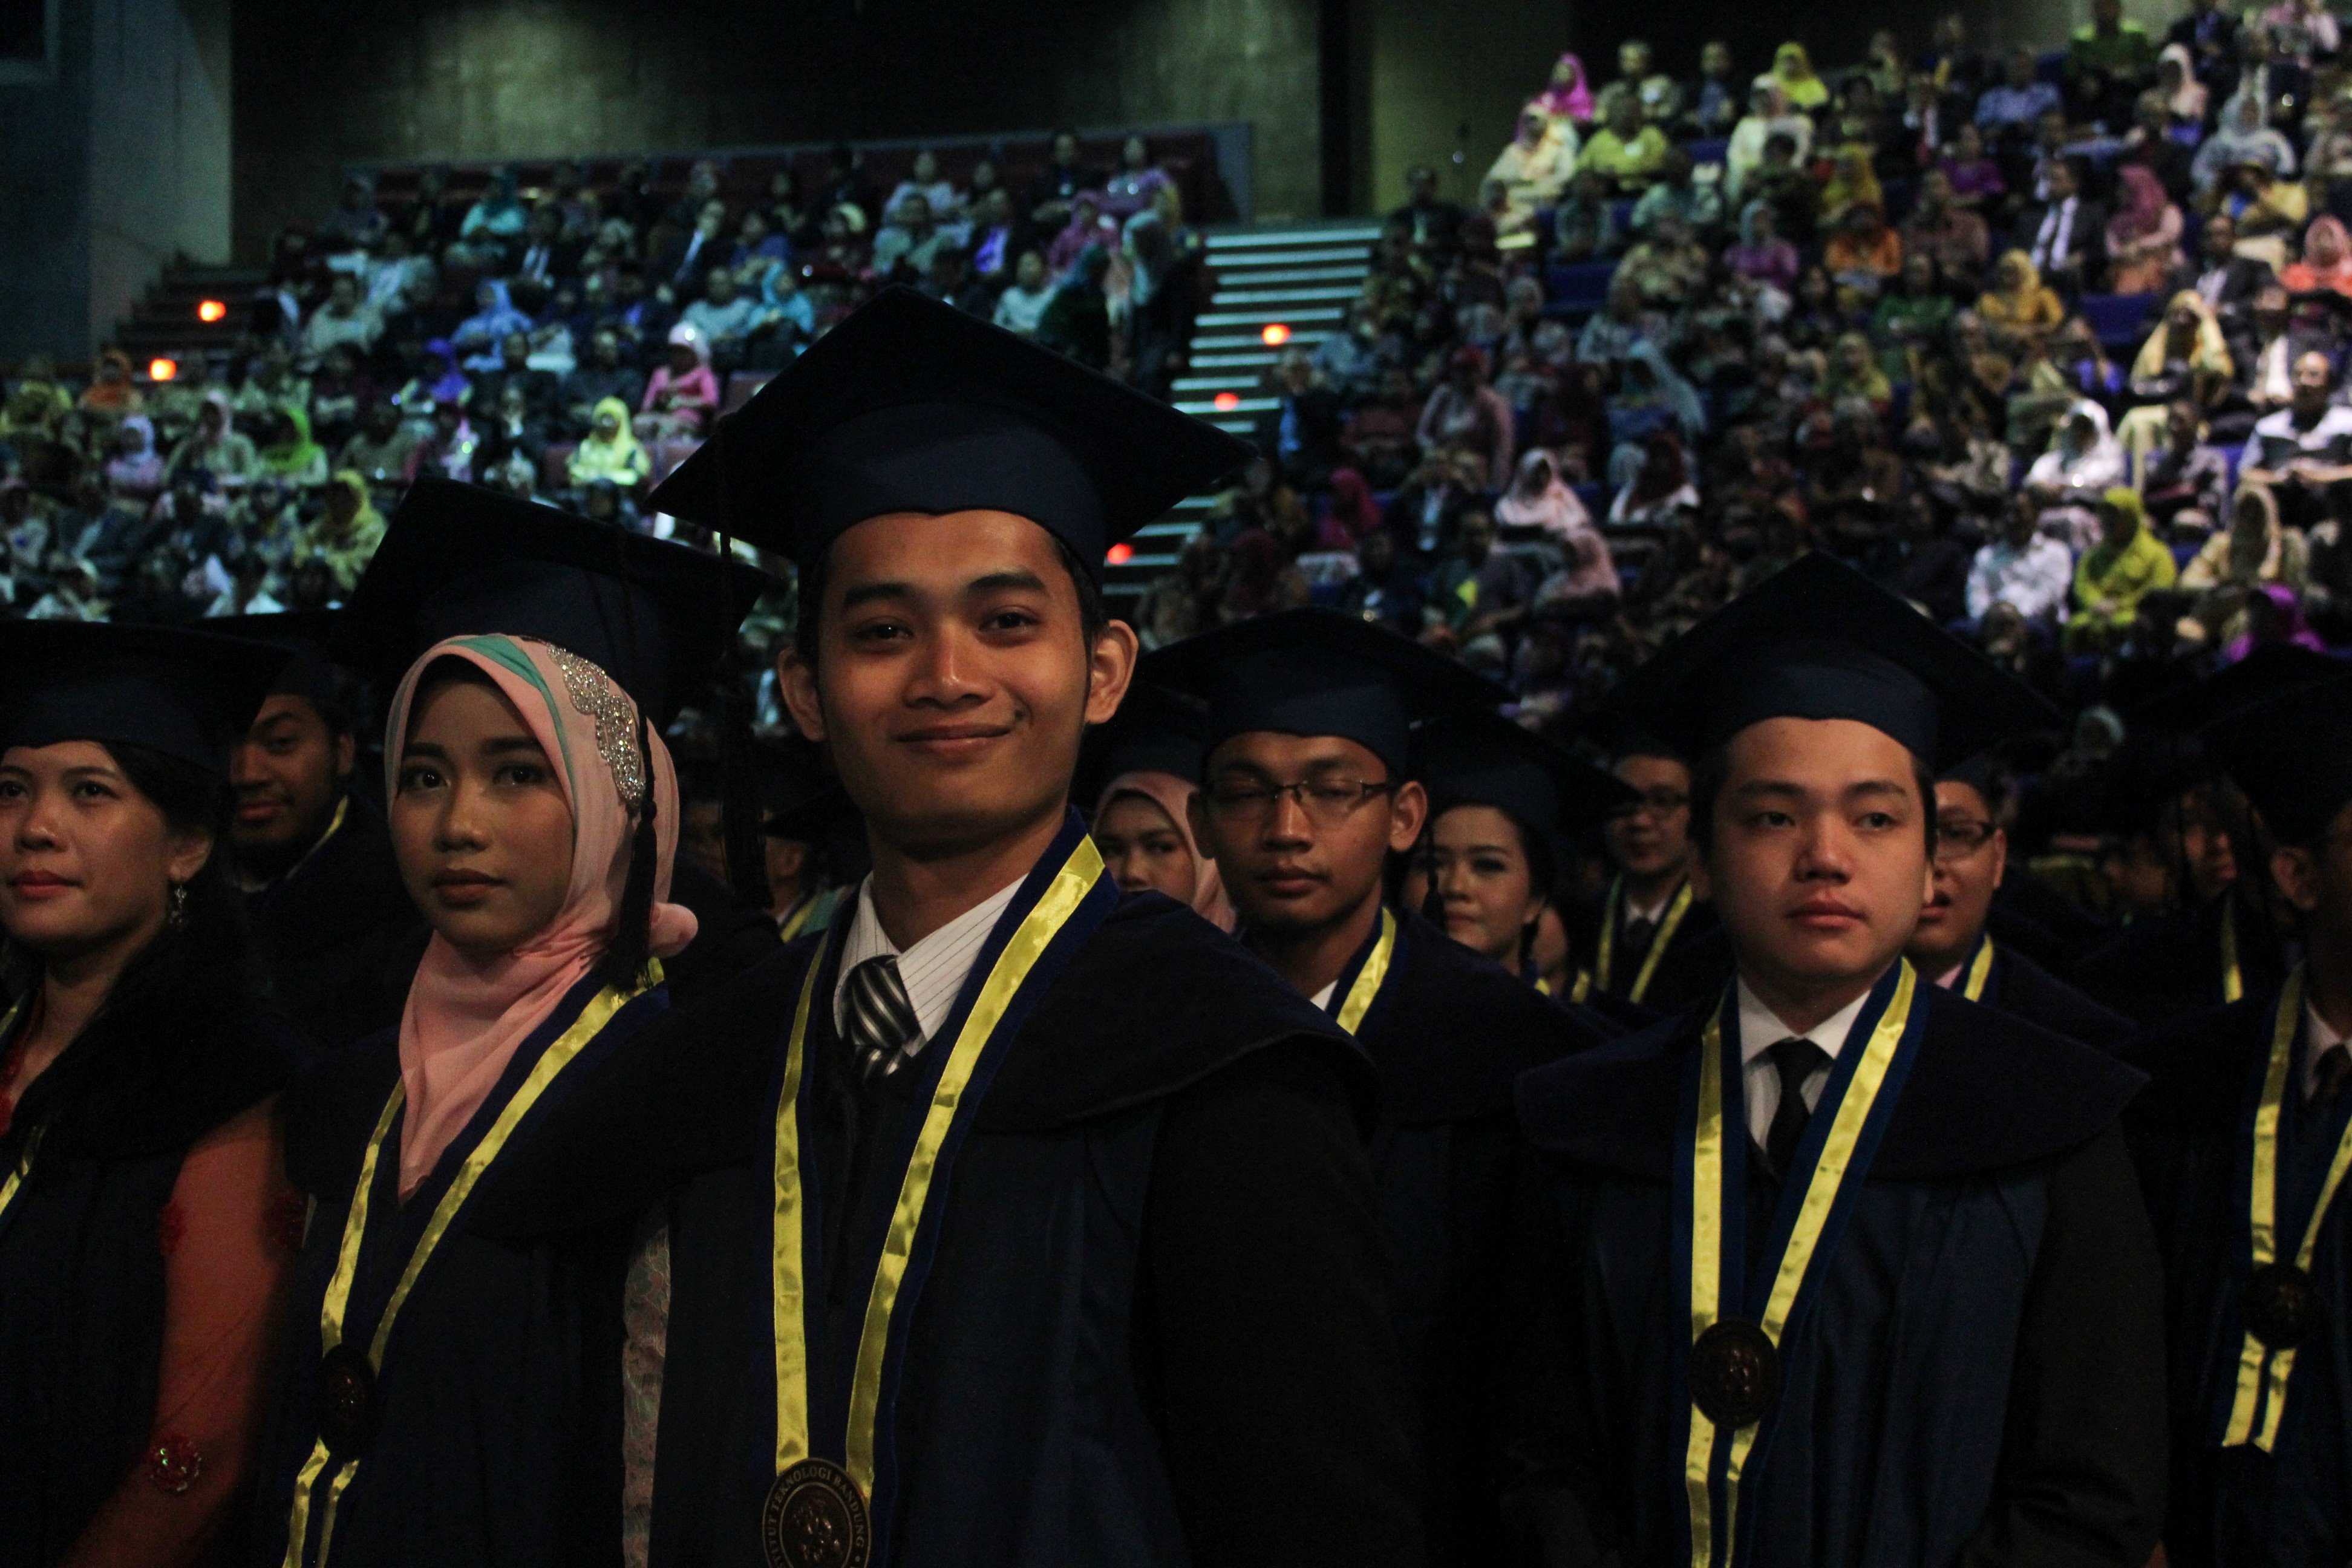 1543-graduated-in-itbs-second-graduation